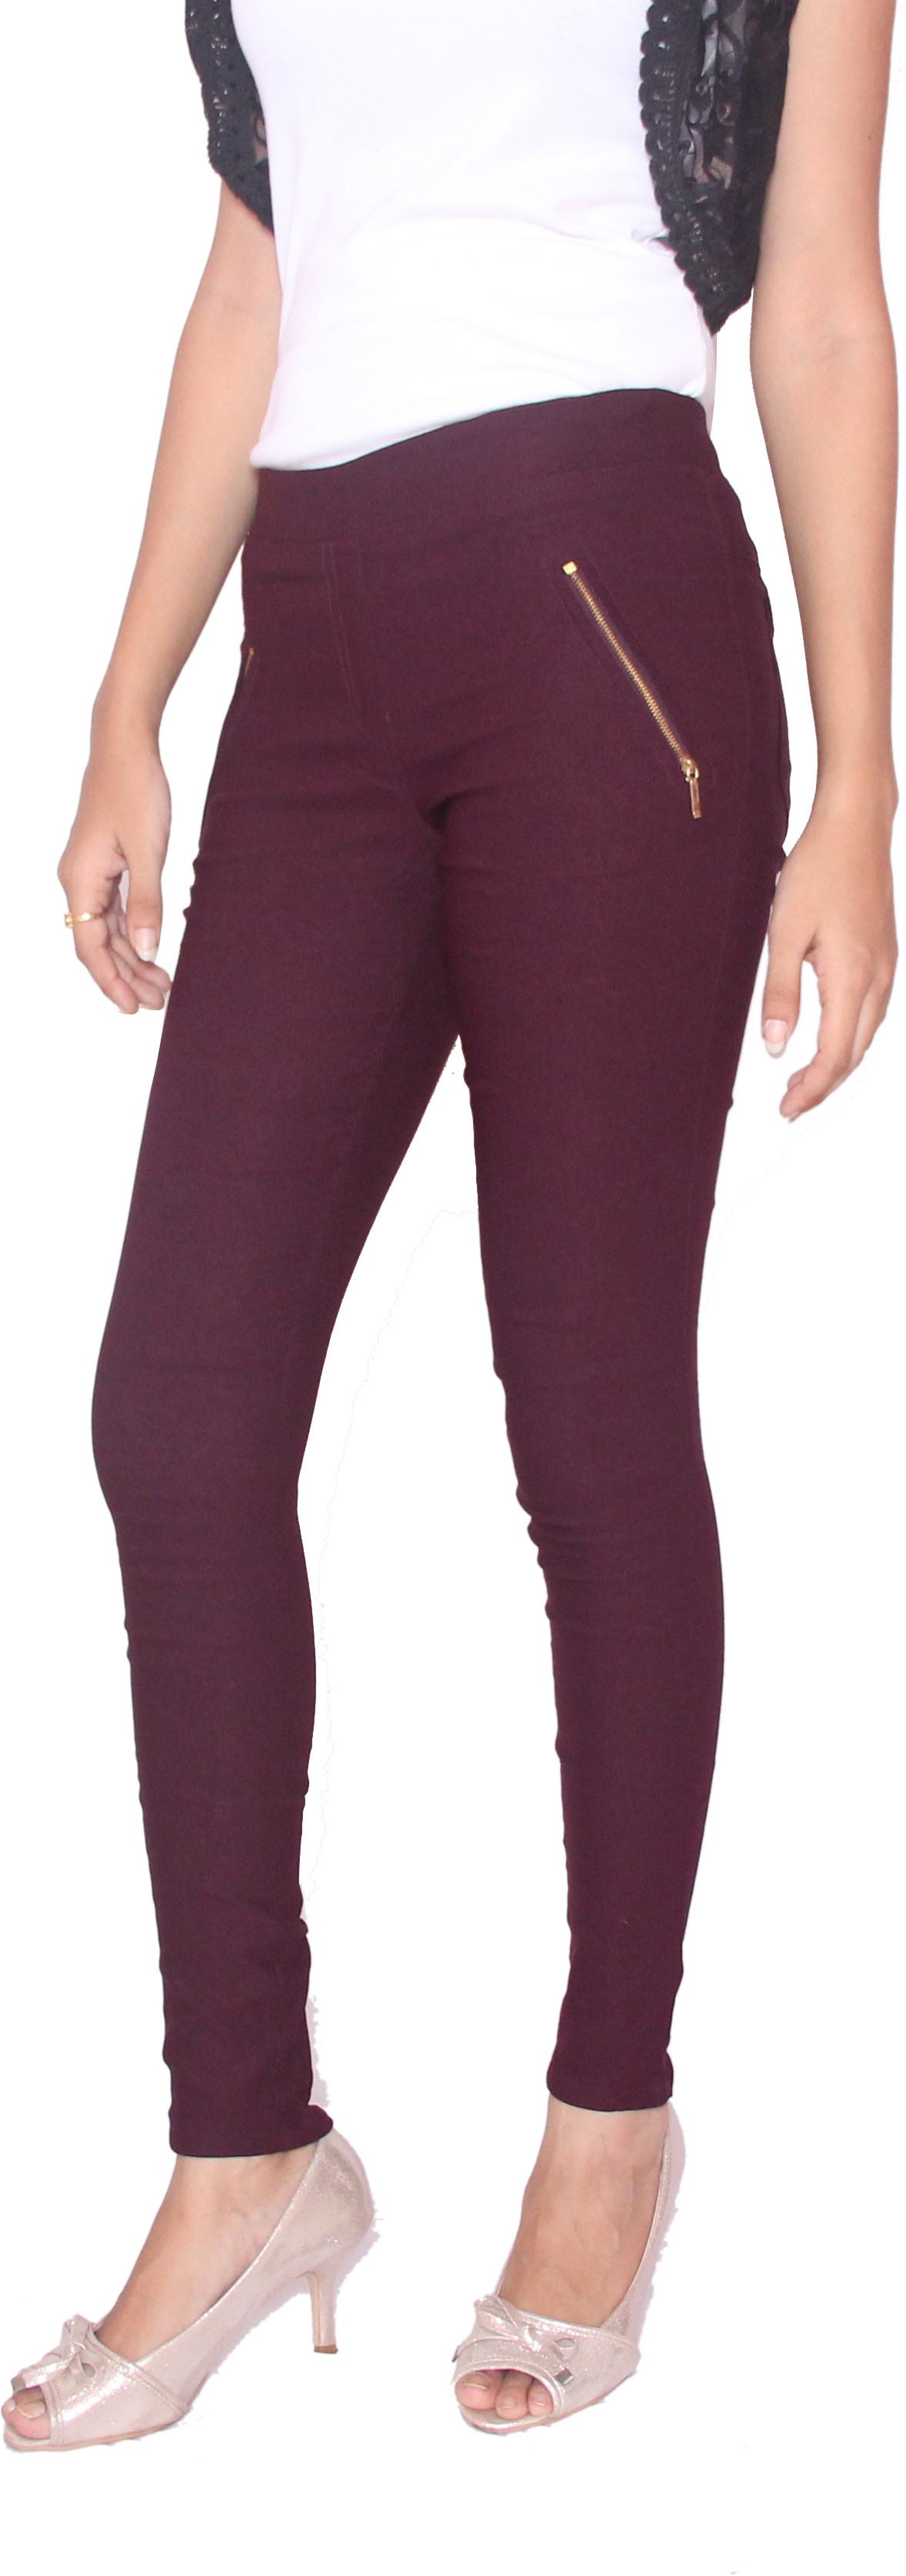 Fungus Womens Maroon Jeggings